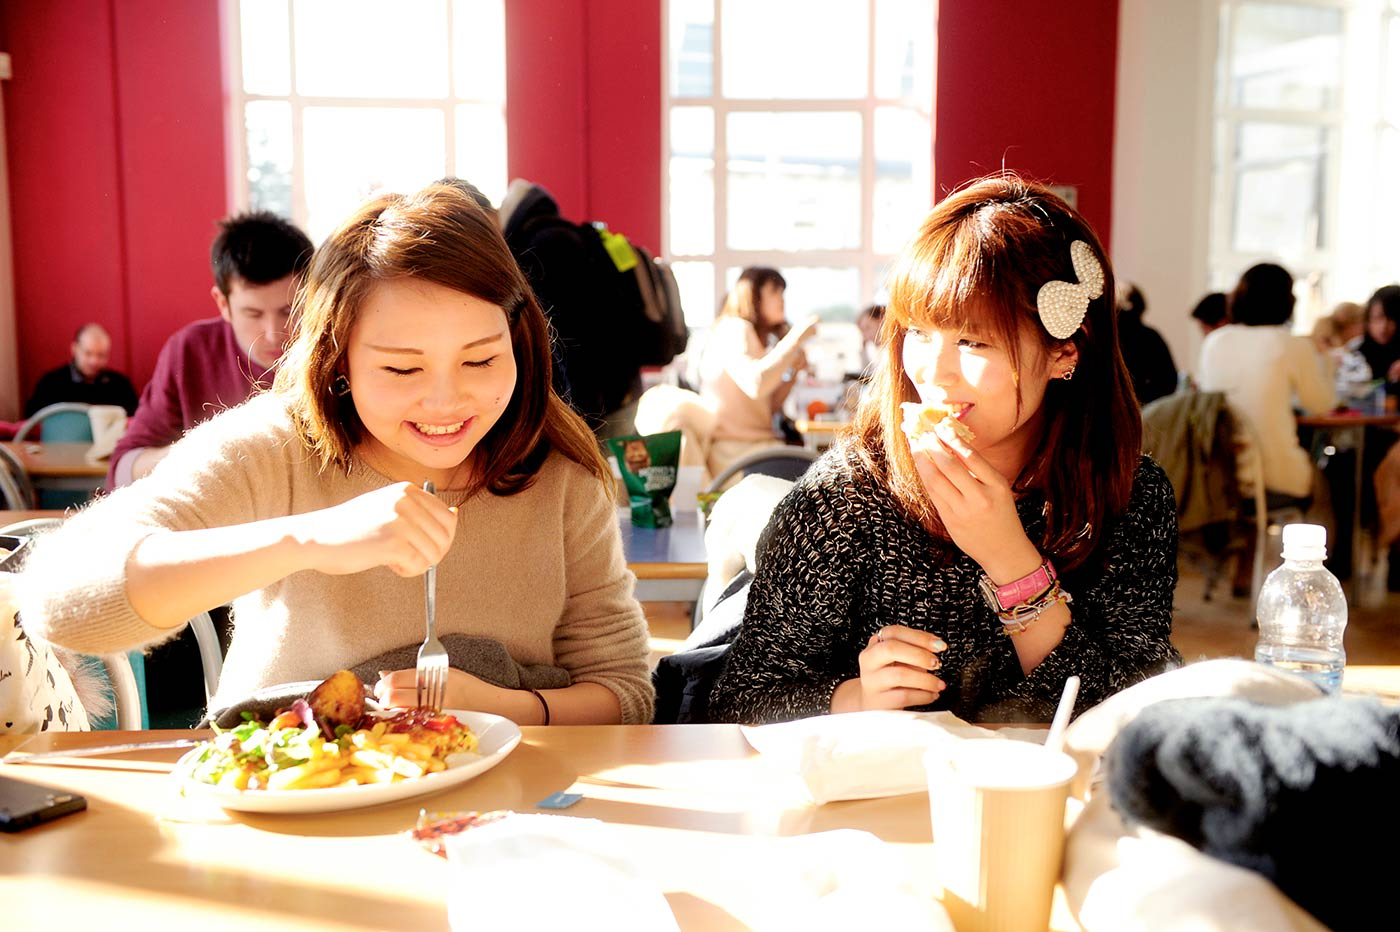 Students eating in the refectory